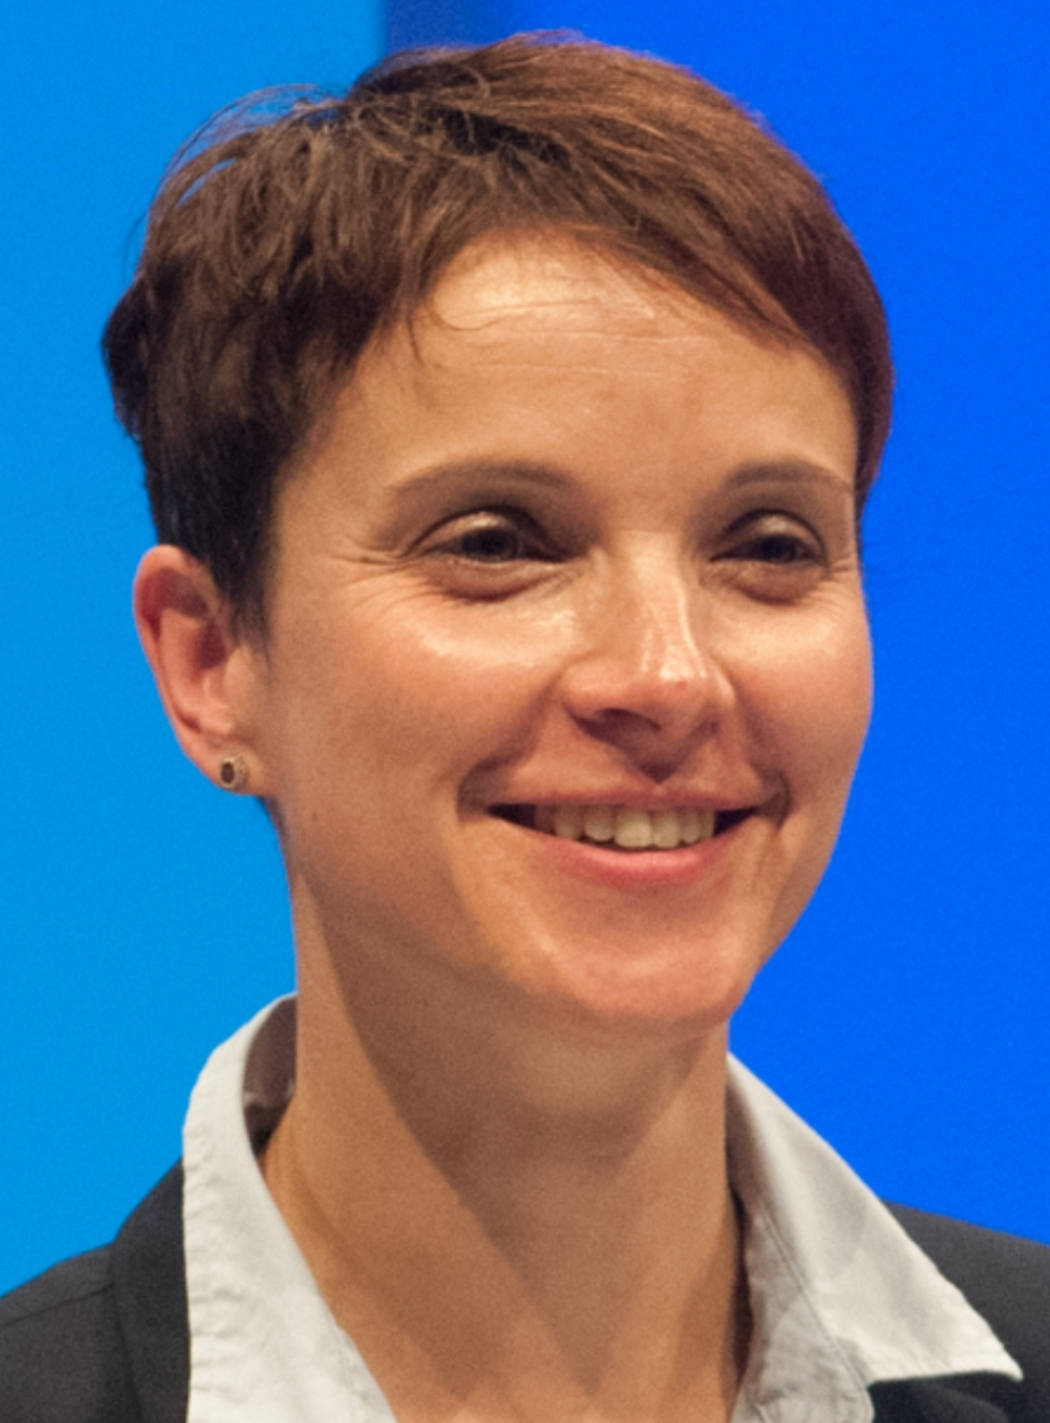 Image result for Frauke Petry, photos